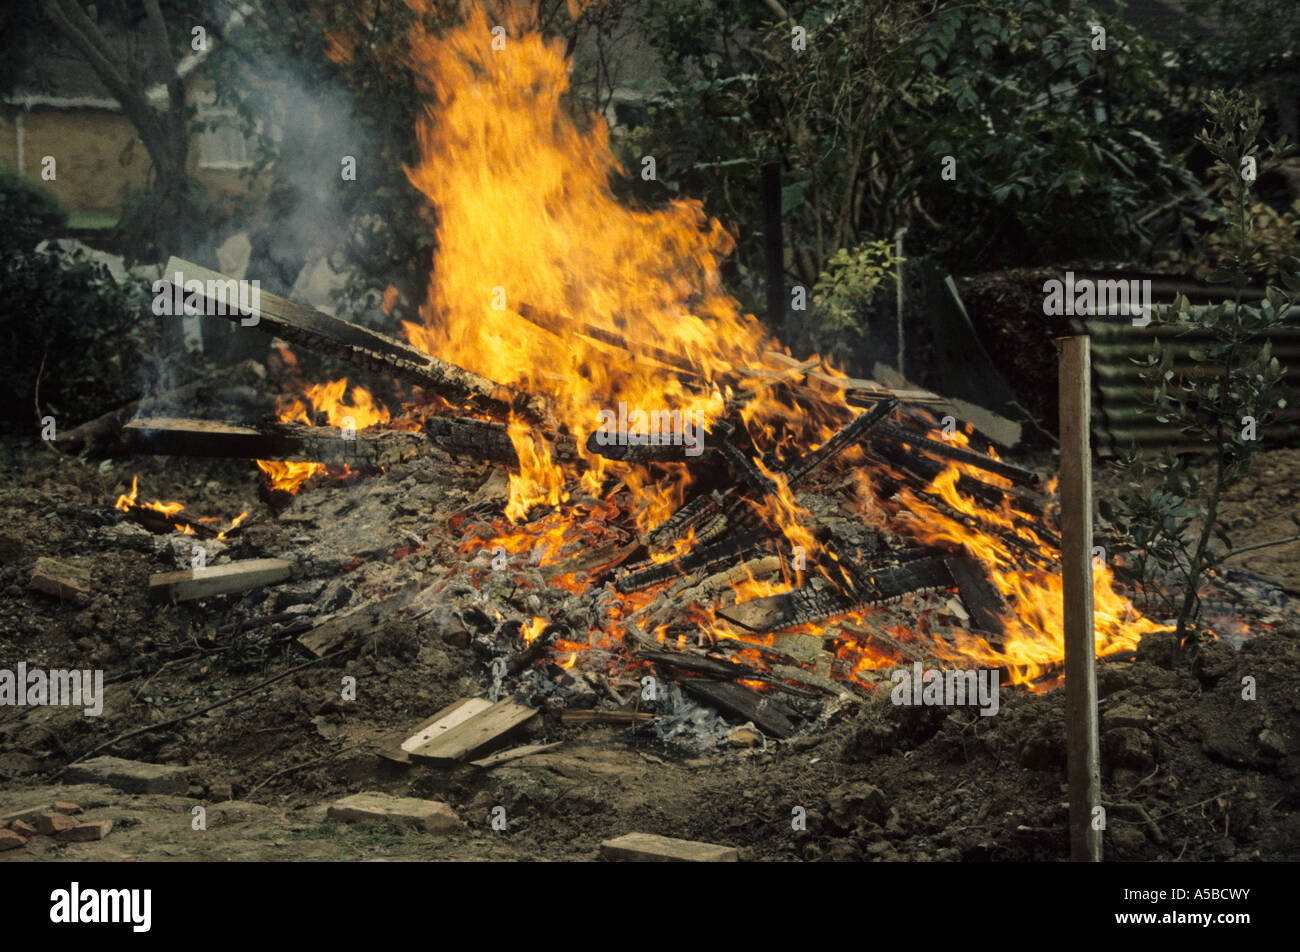 night time bonfire in garden polluting the air and atmosphere Stock Photo